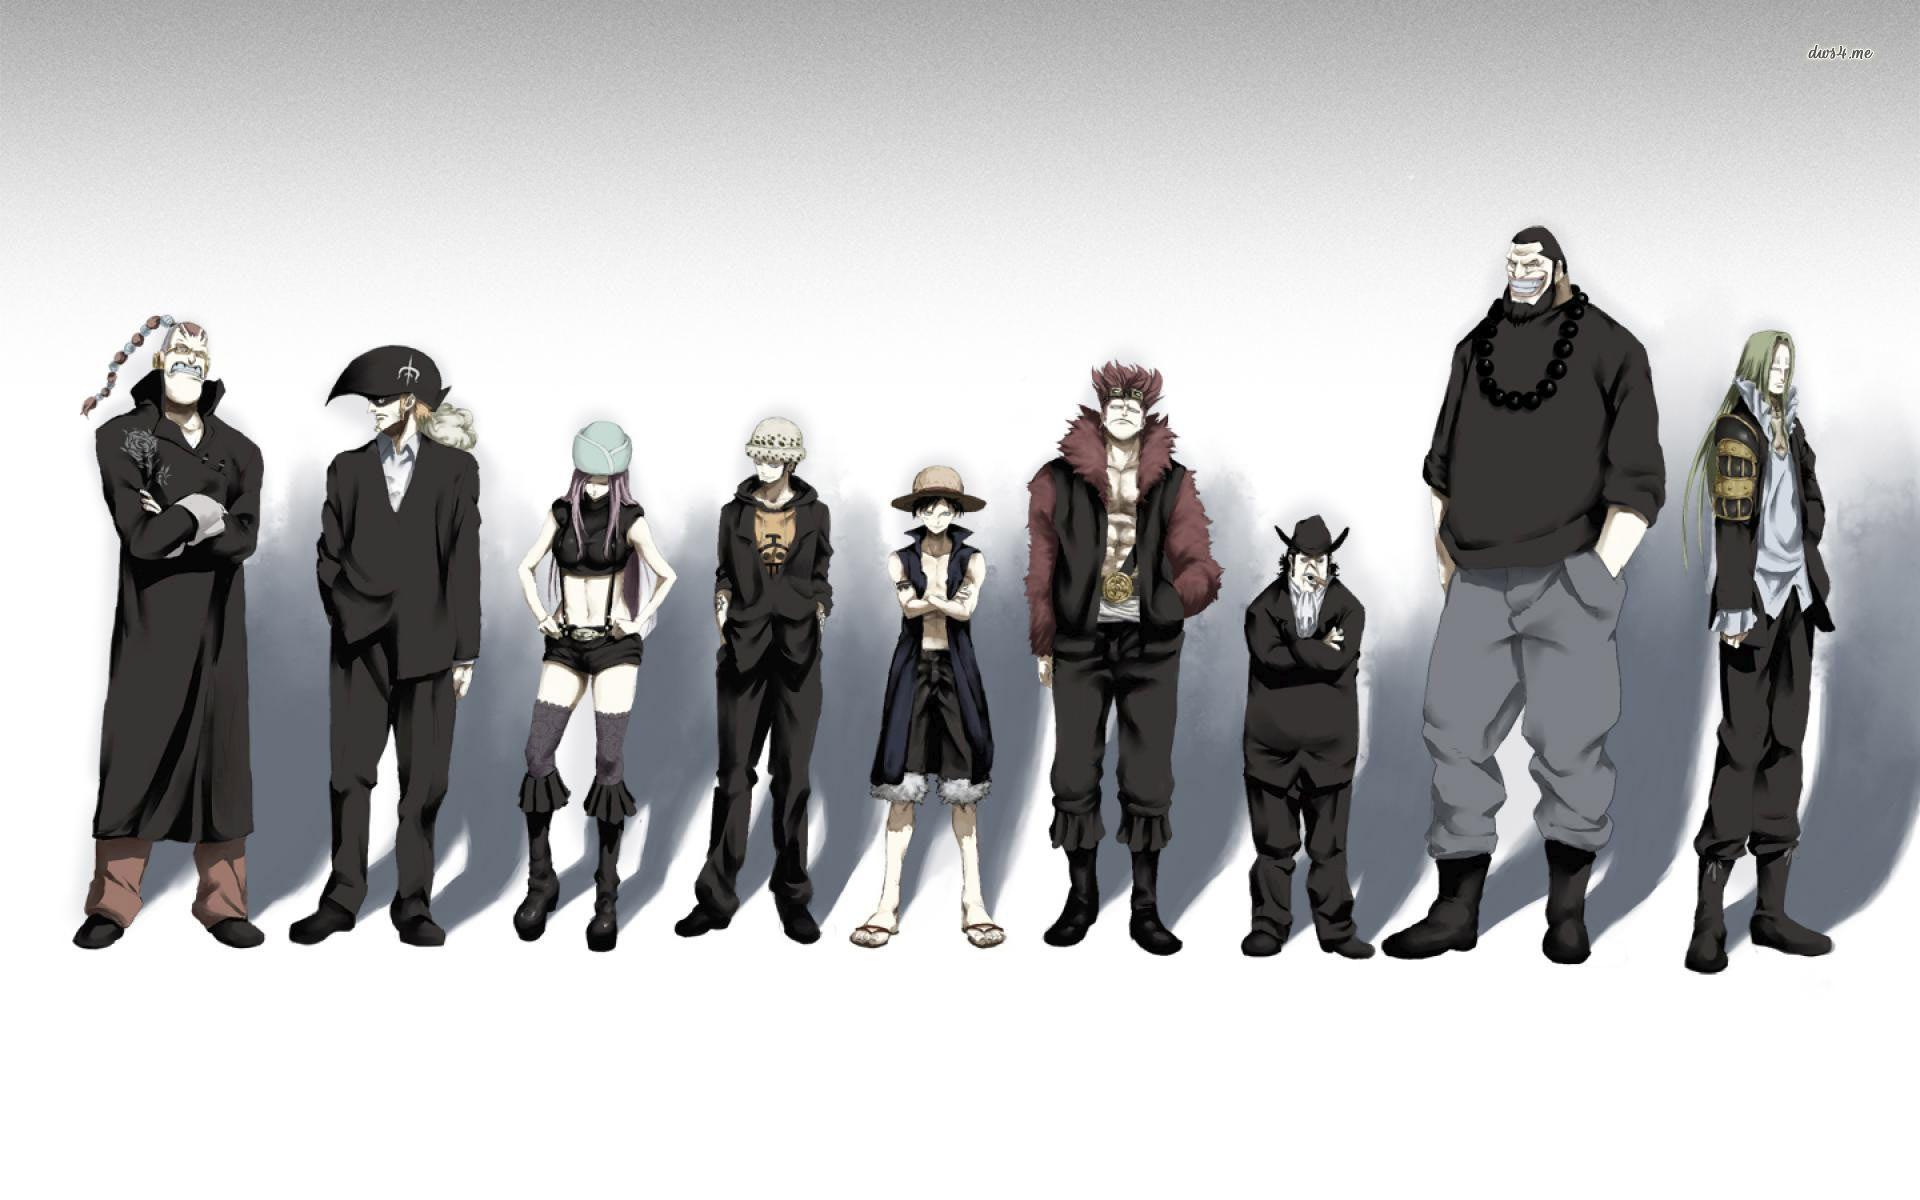 One Piece wallpaper - Anime wallpapers - #